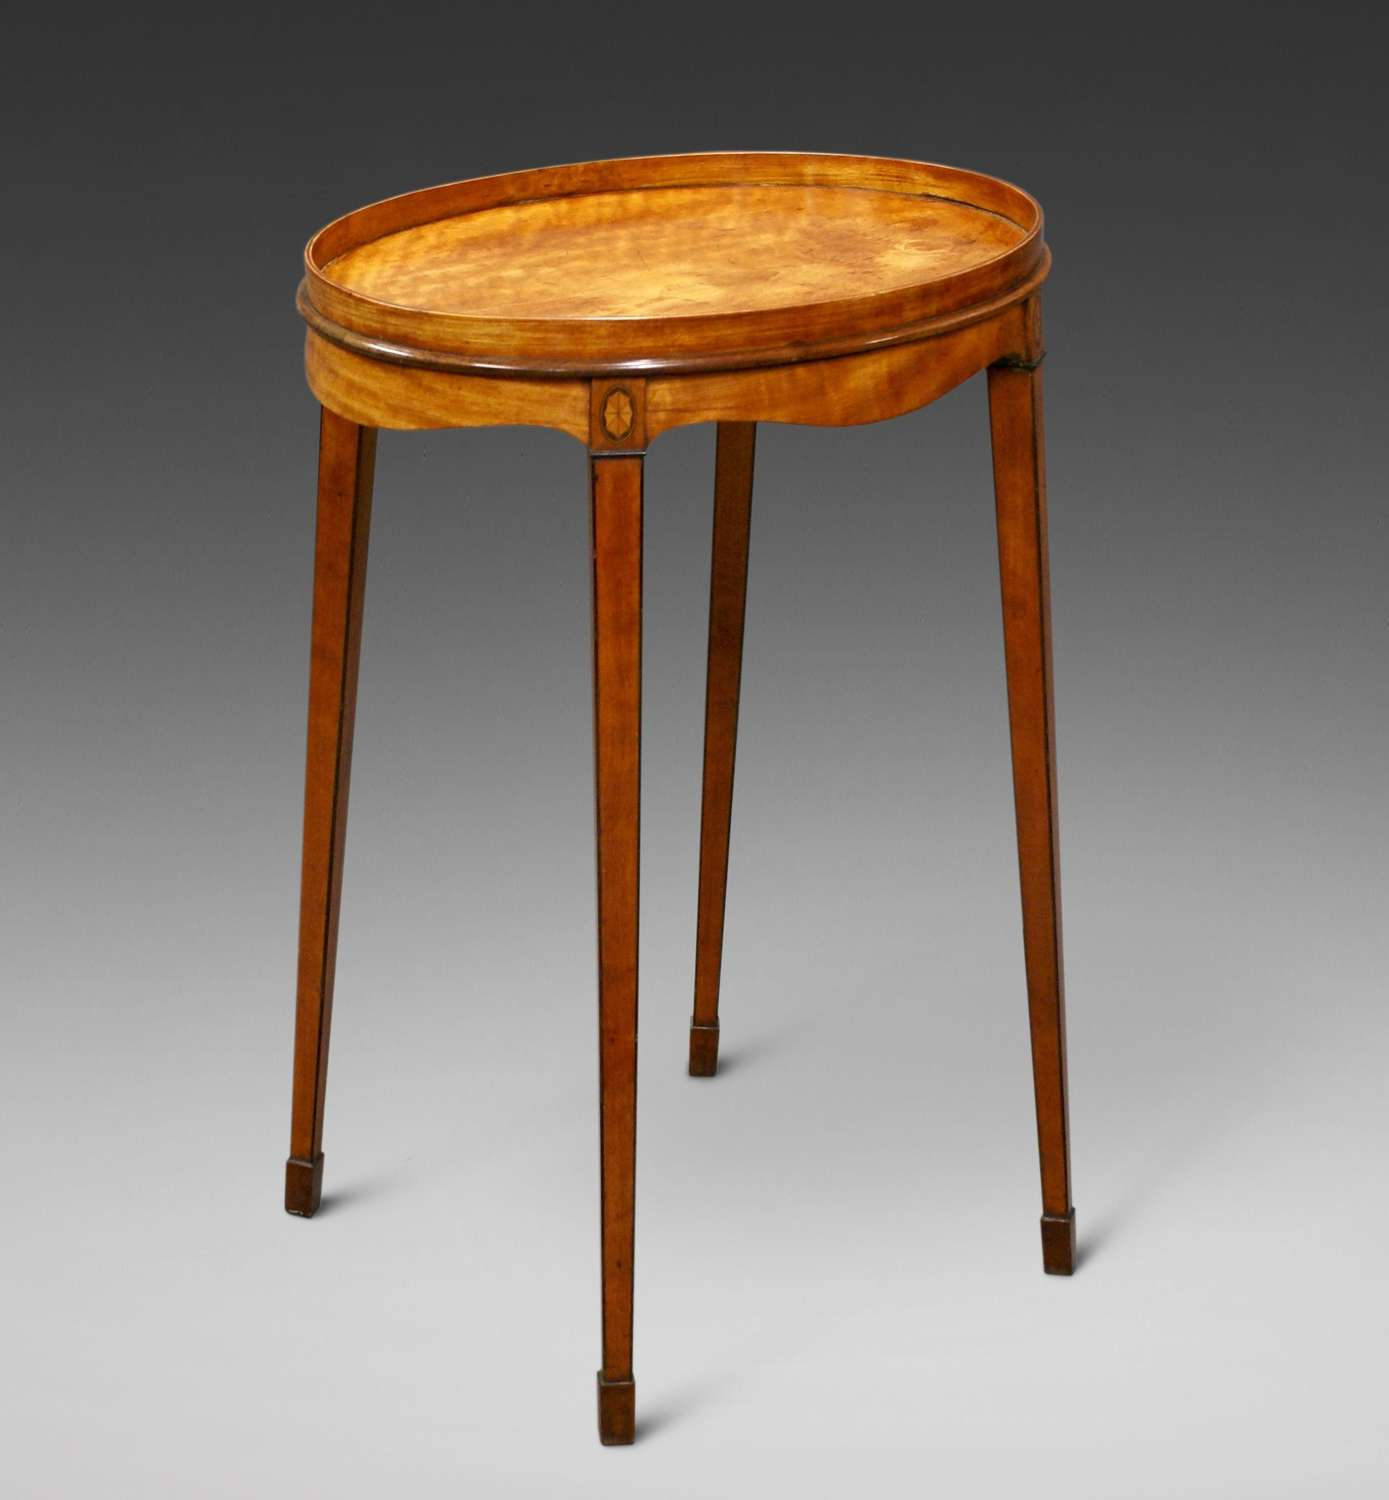 A George III oval satinwood inlaid urn stand